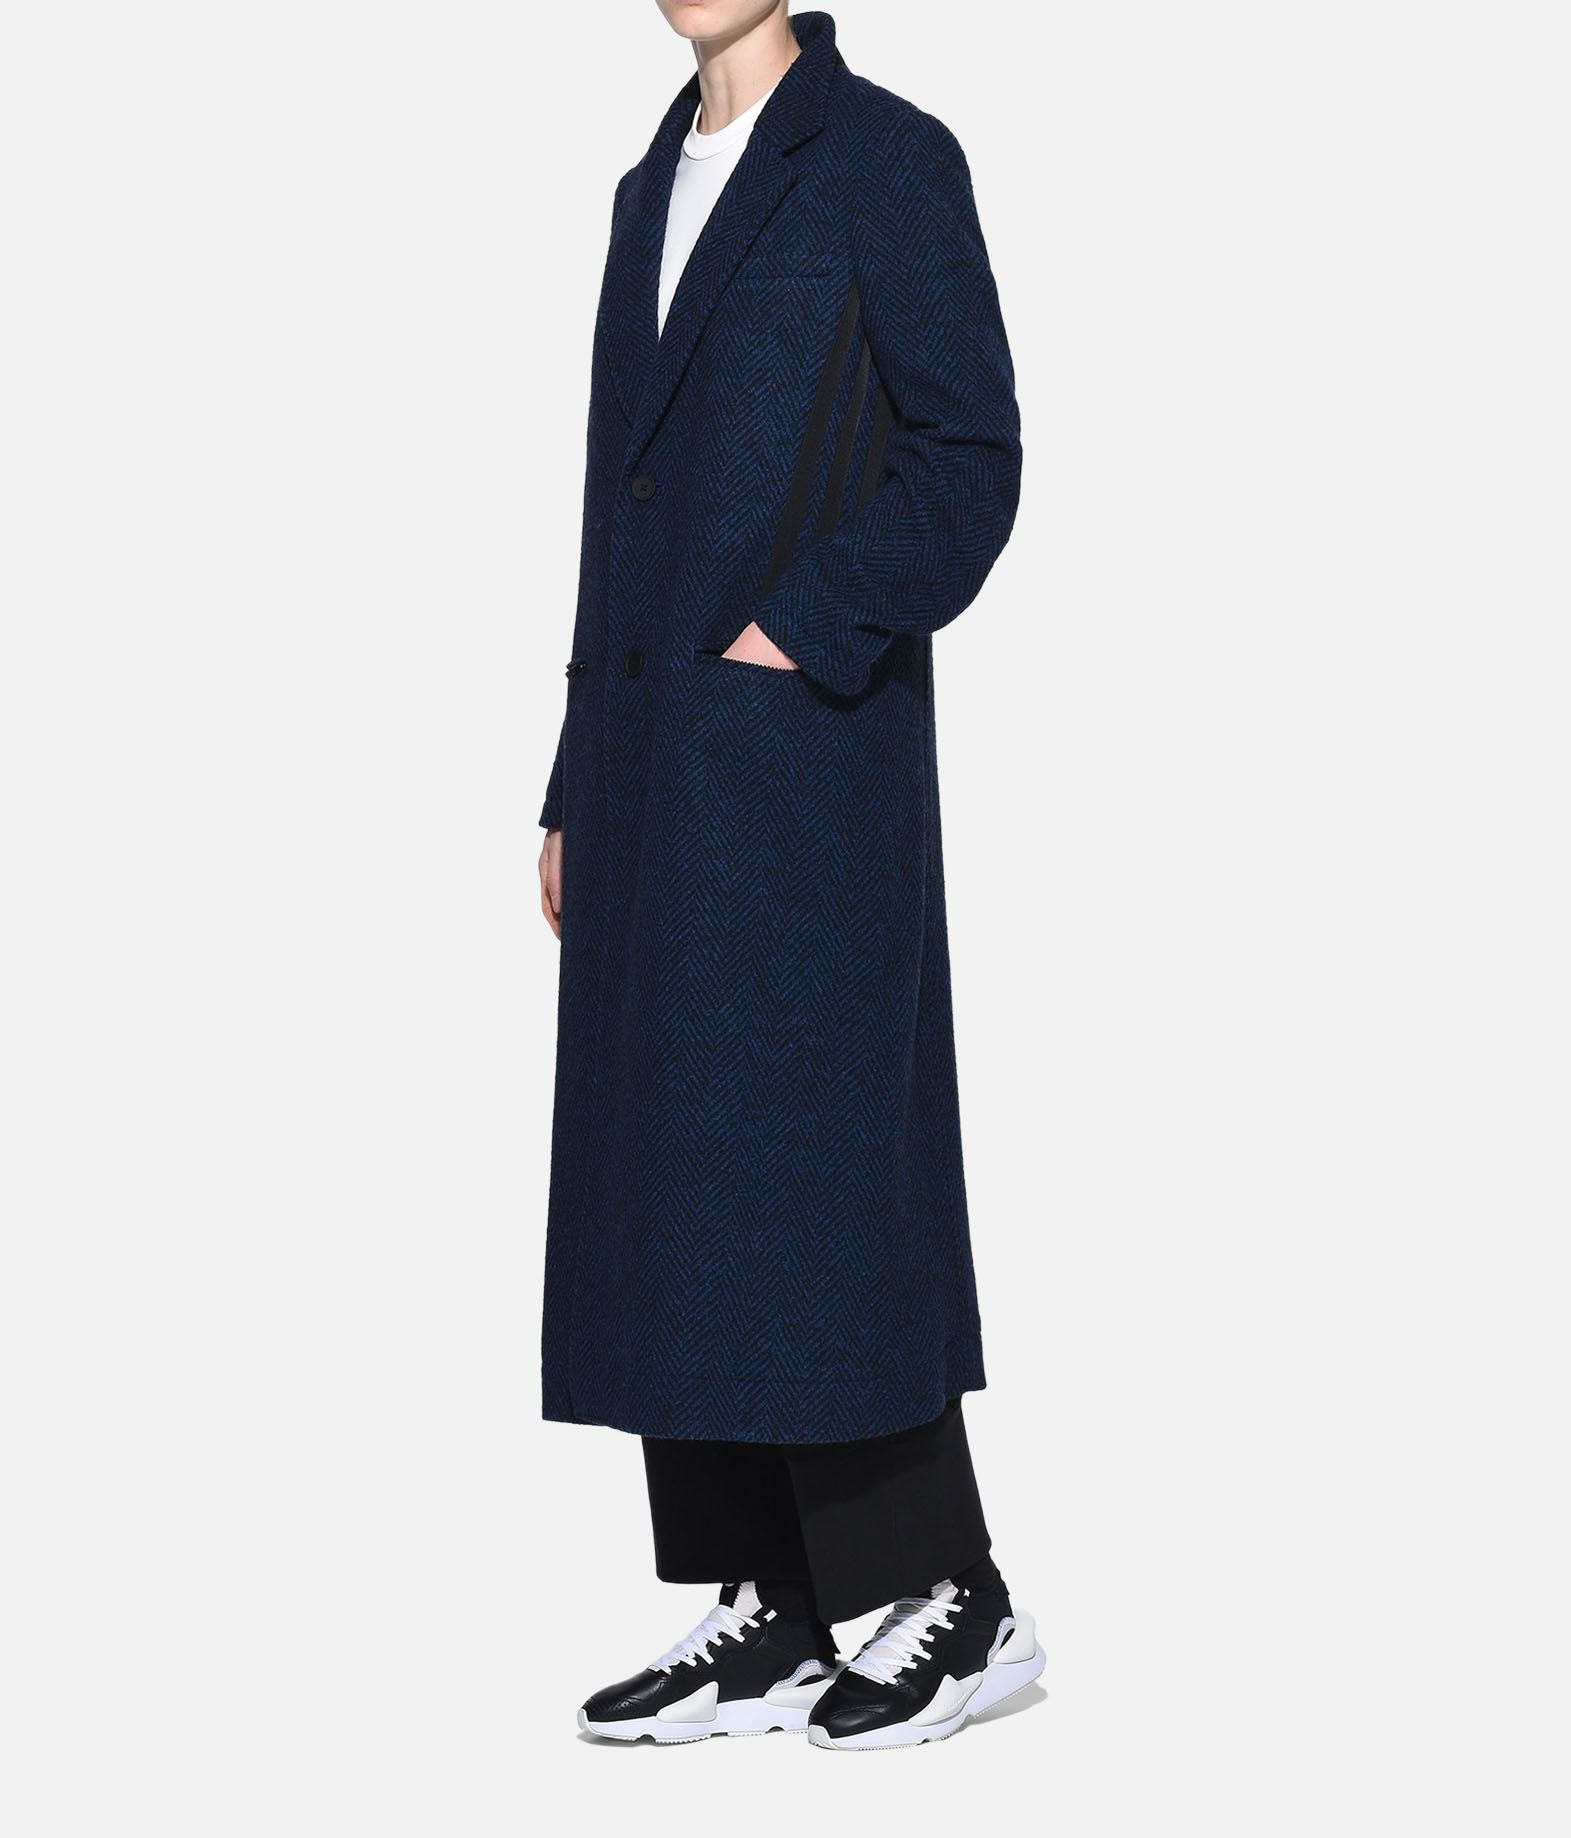 Y-3 Y-3 3-Stripes Tailored Wool Coat Coat Woman a